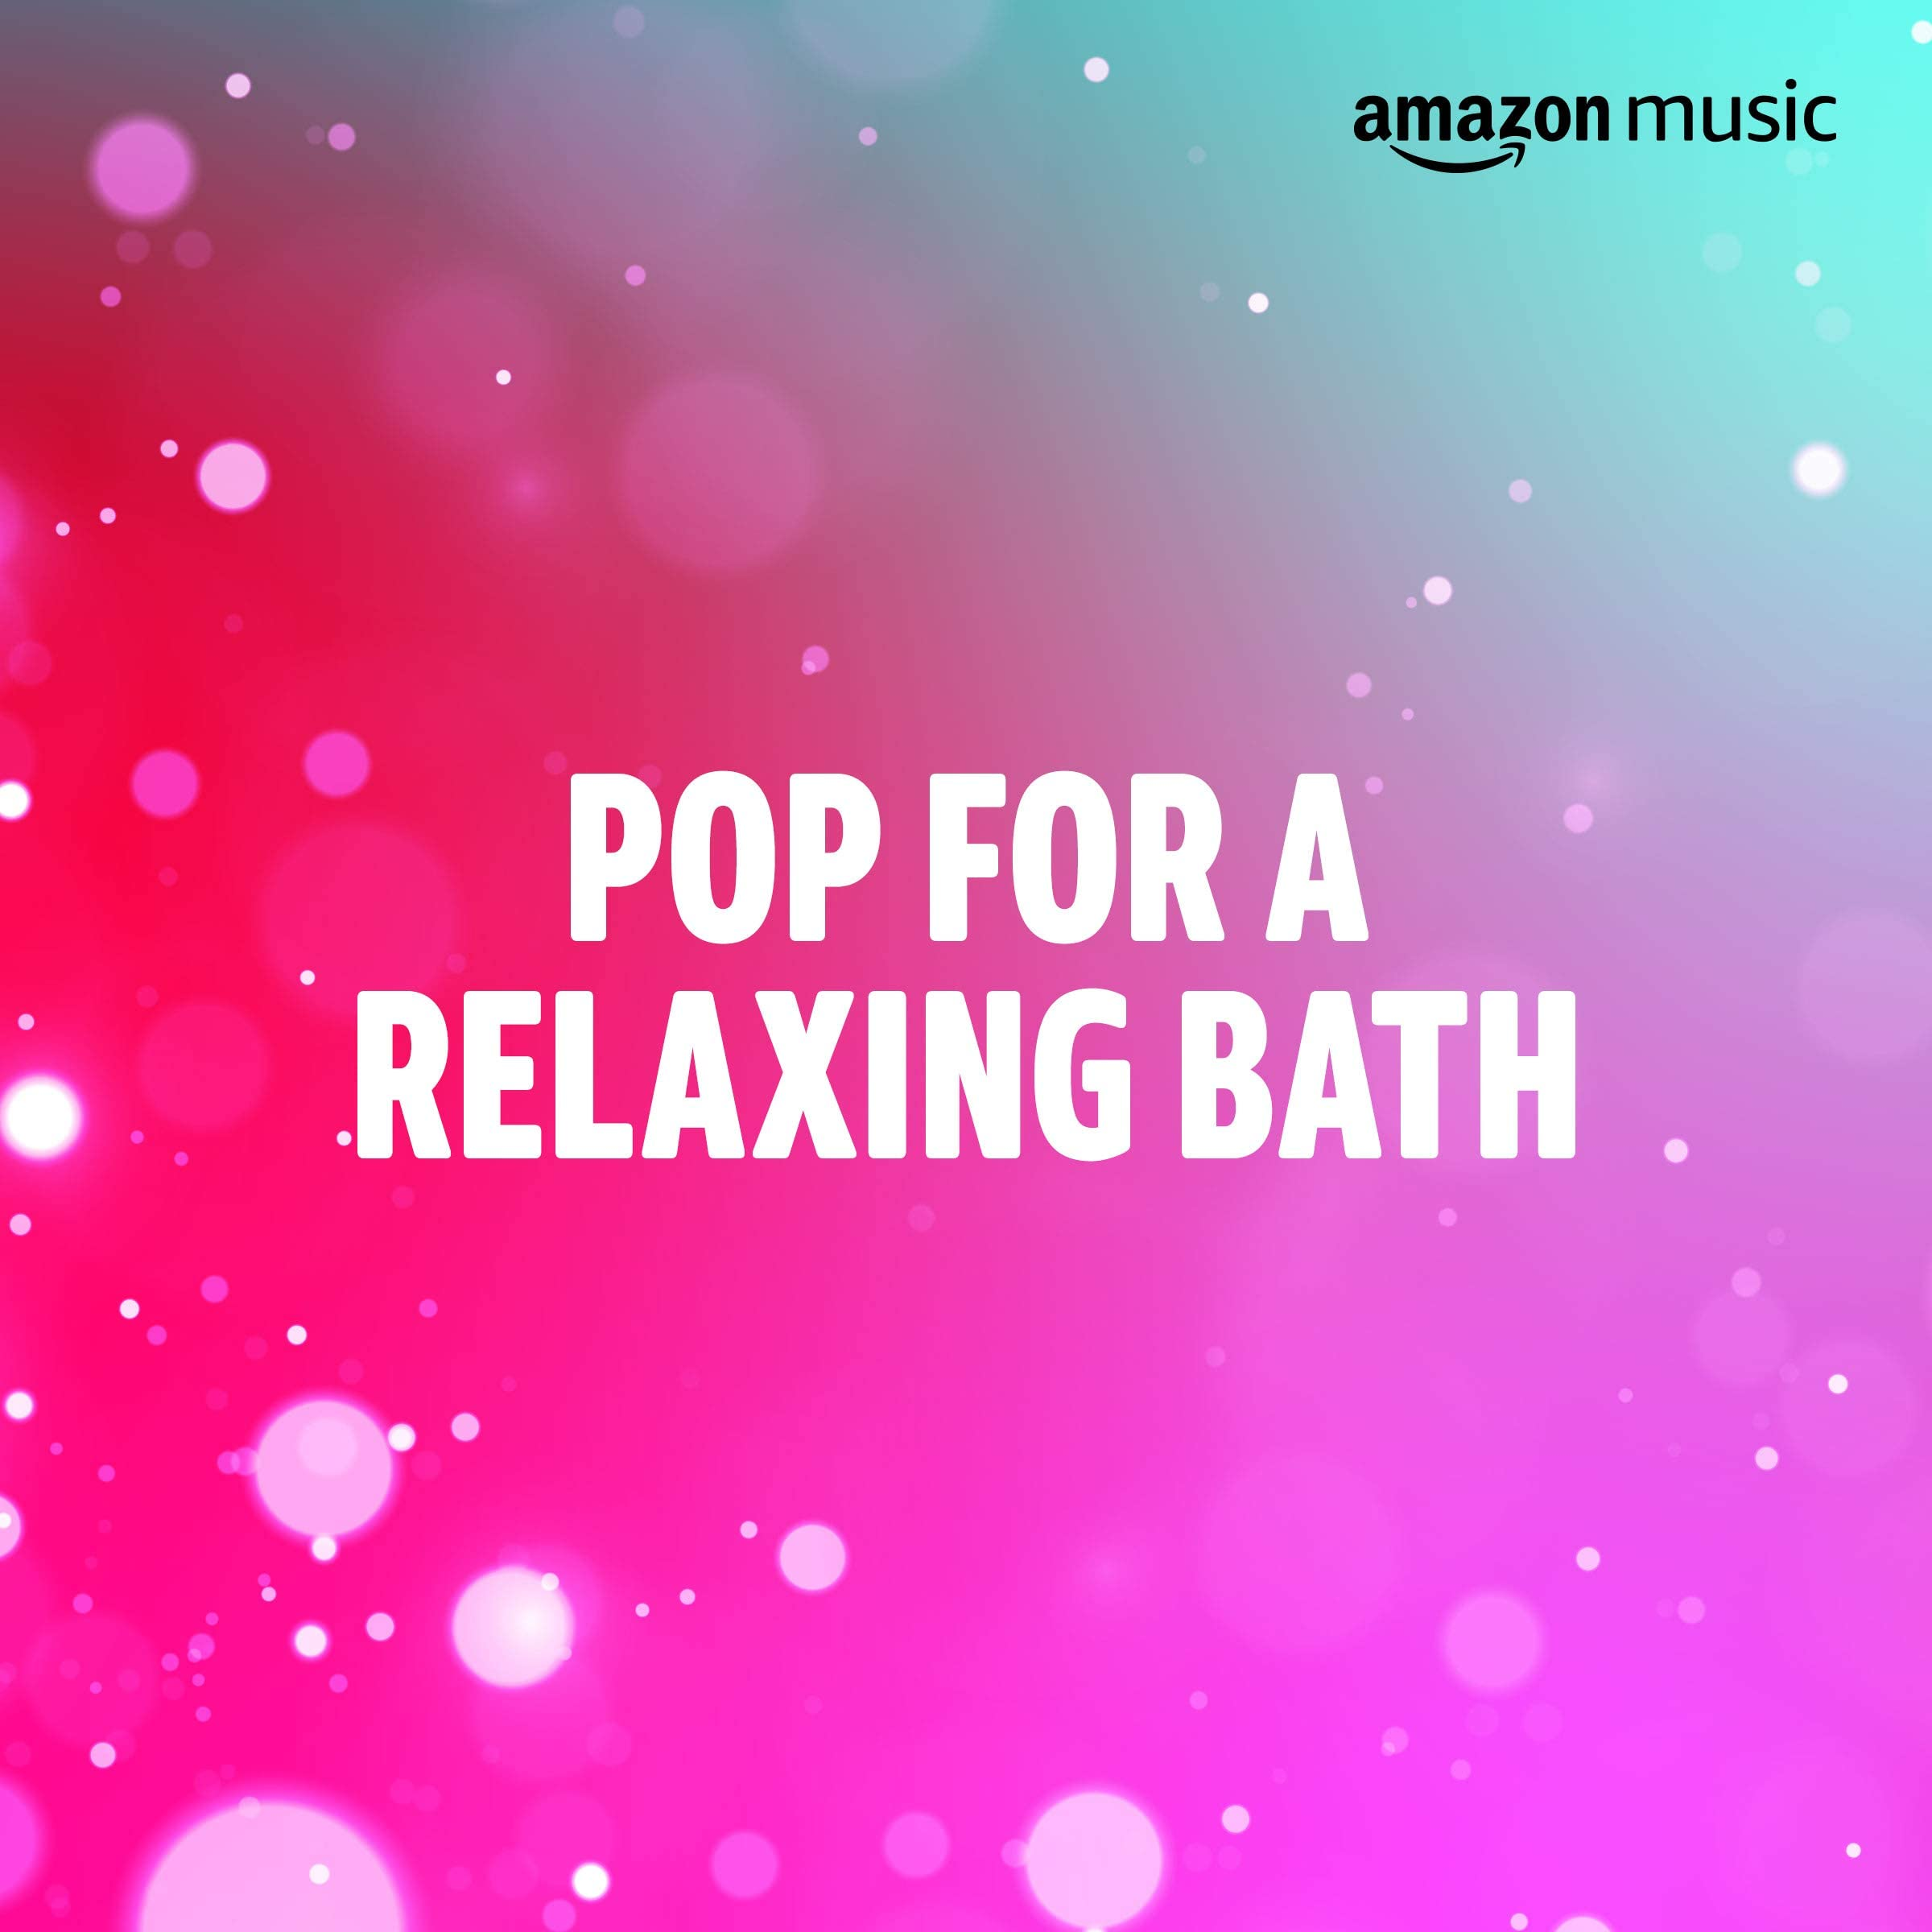 Pop for a Relaxing Bath